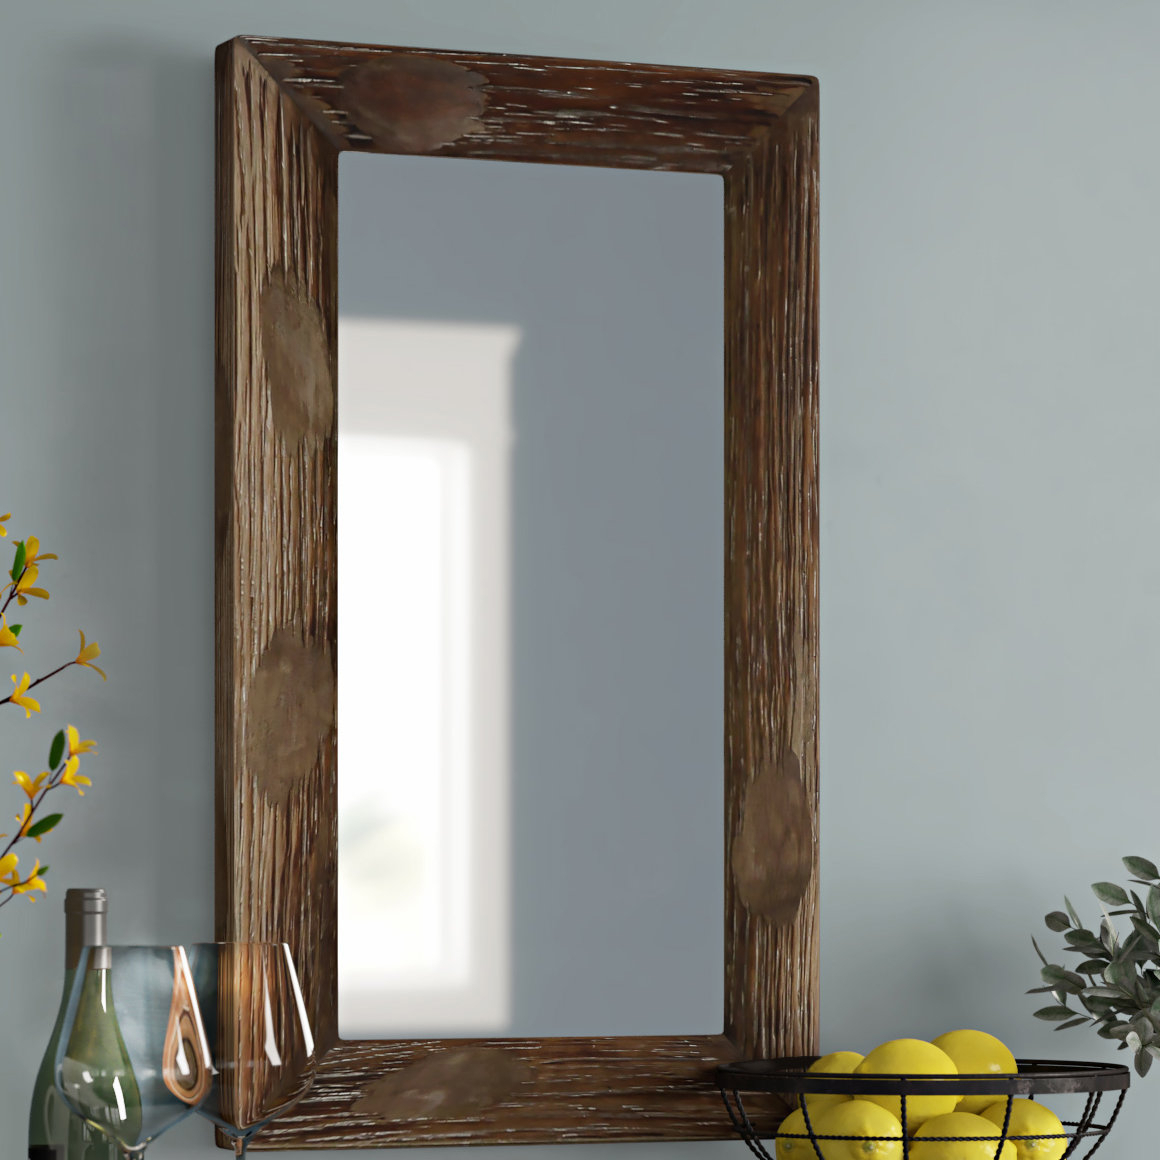 Tahara Rustic Wall Mirror Intended For Dedrick Decorative Framed Modern And Contemporary Wall Mirrors (View 11 of 20)